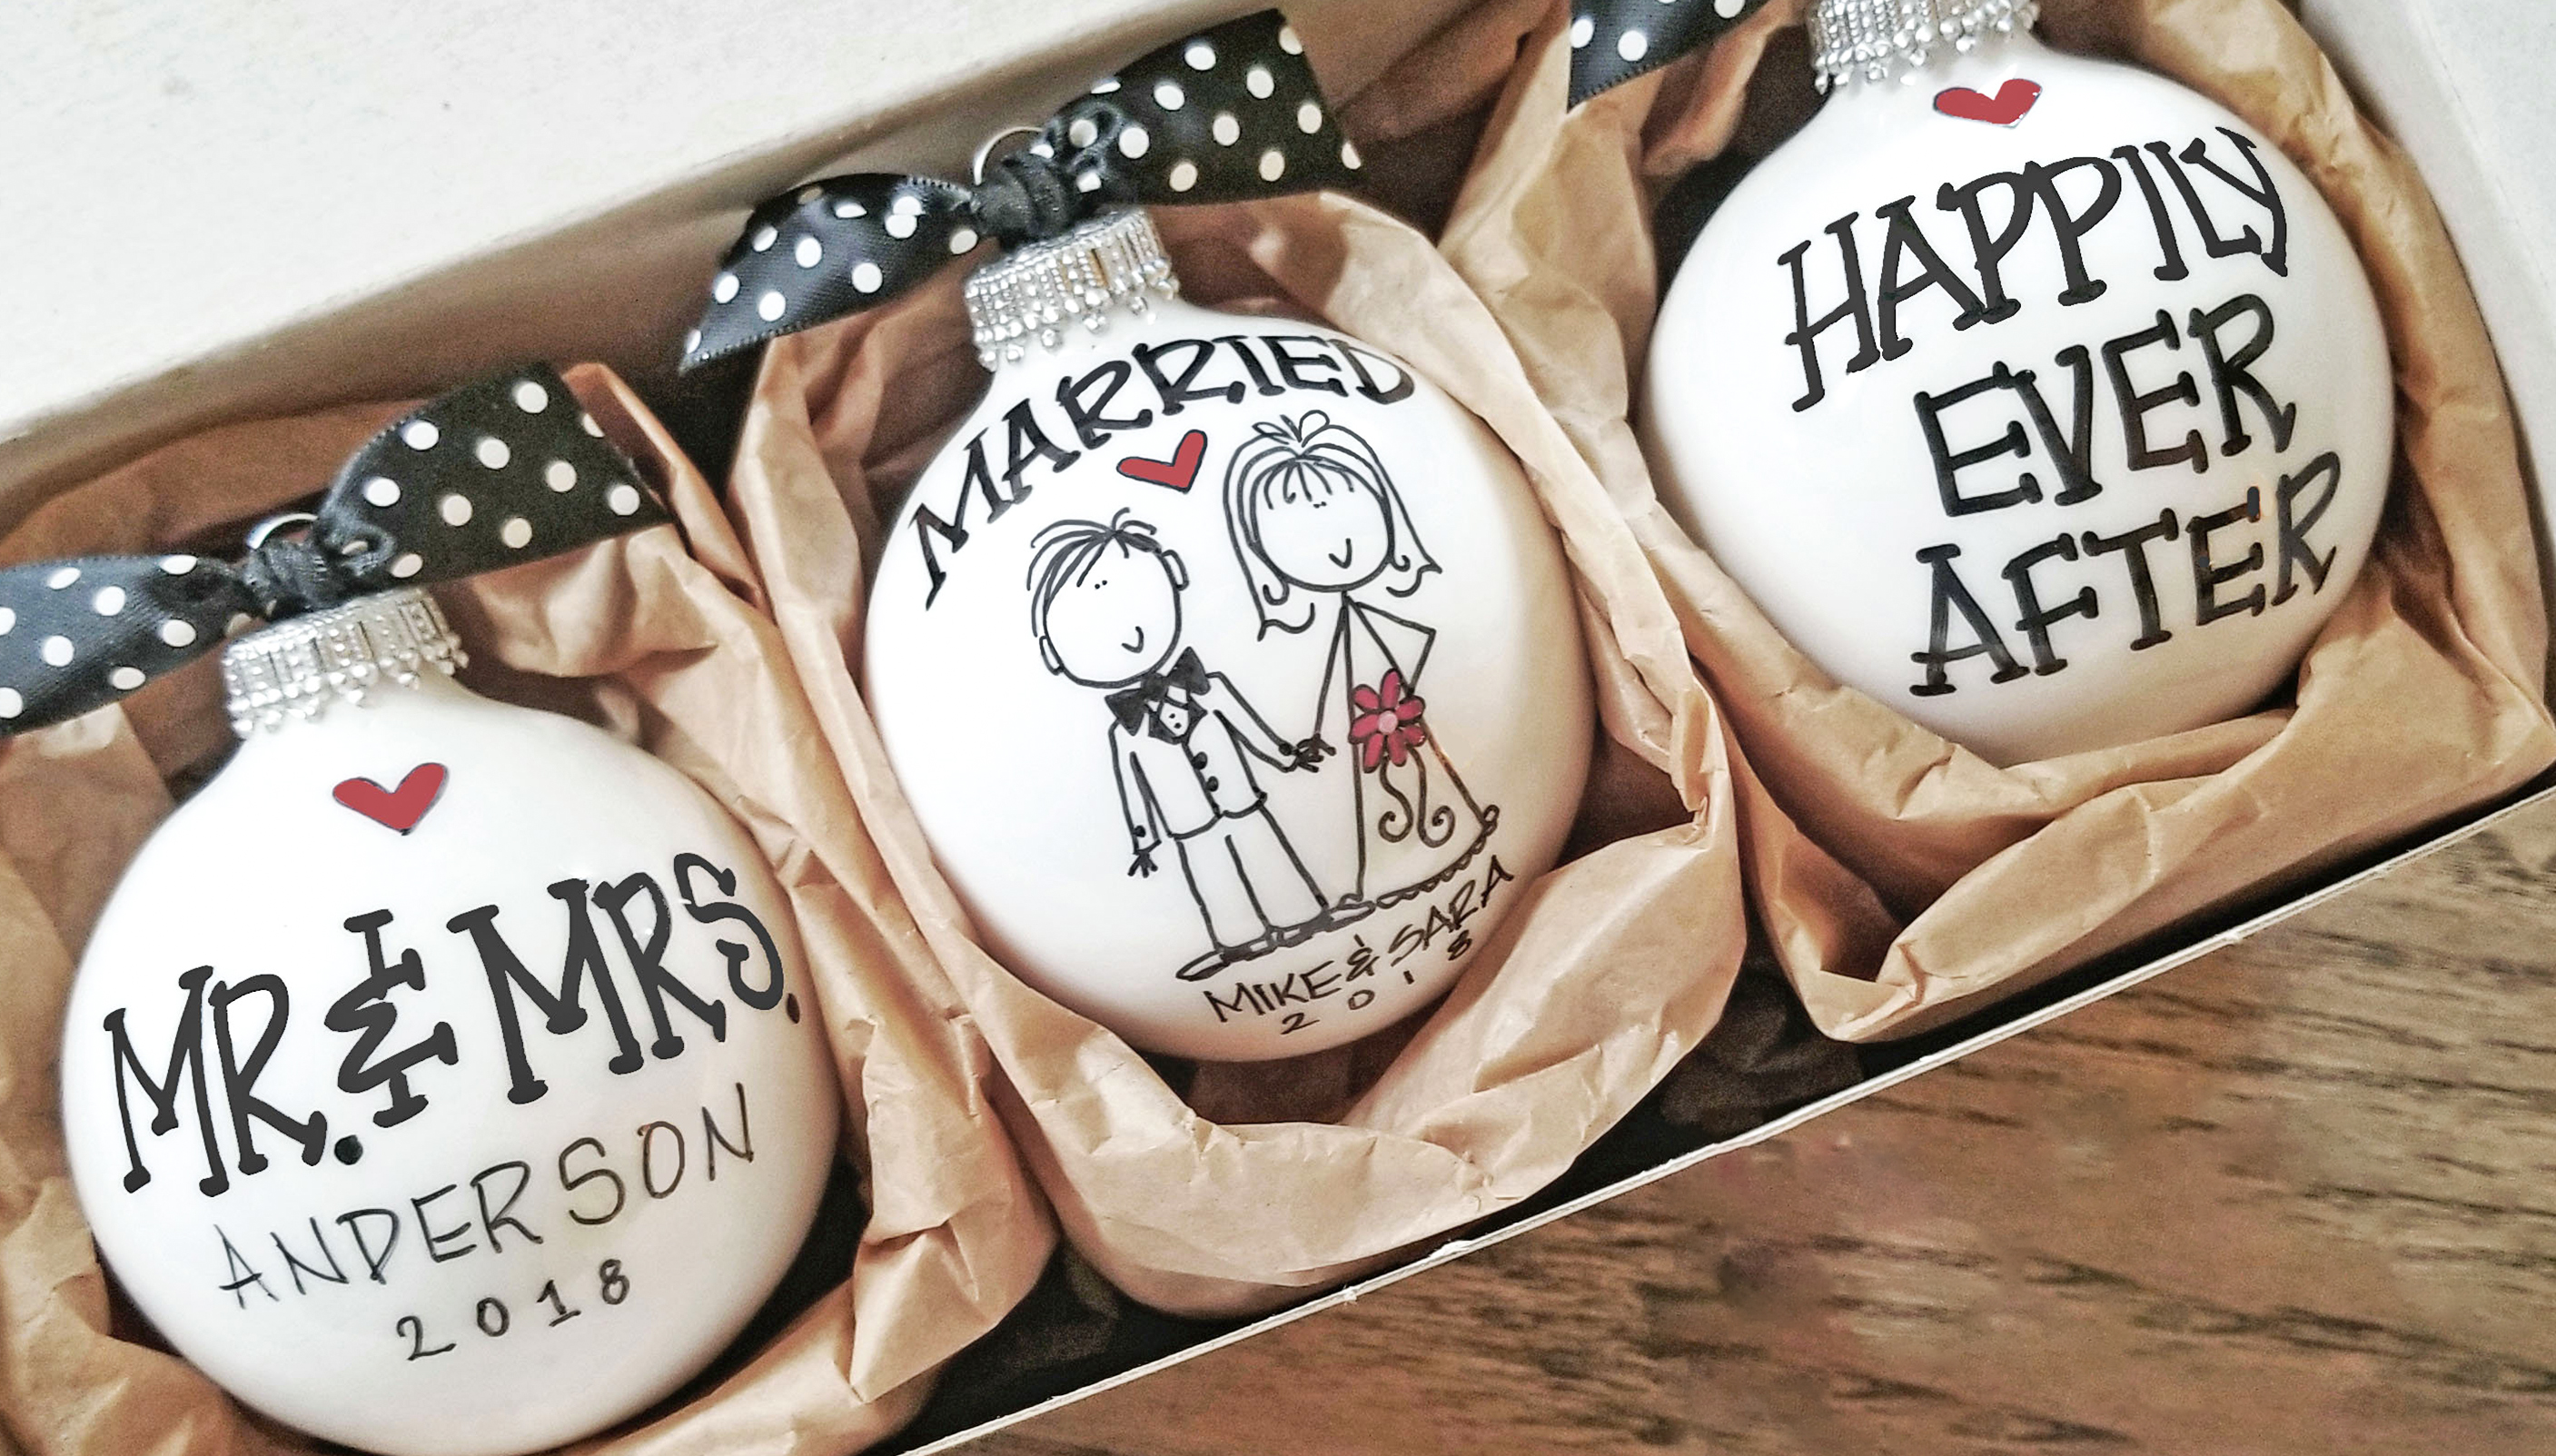 Personalized (DIY) Wedding Gifts Ideas